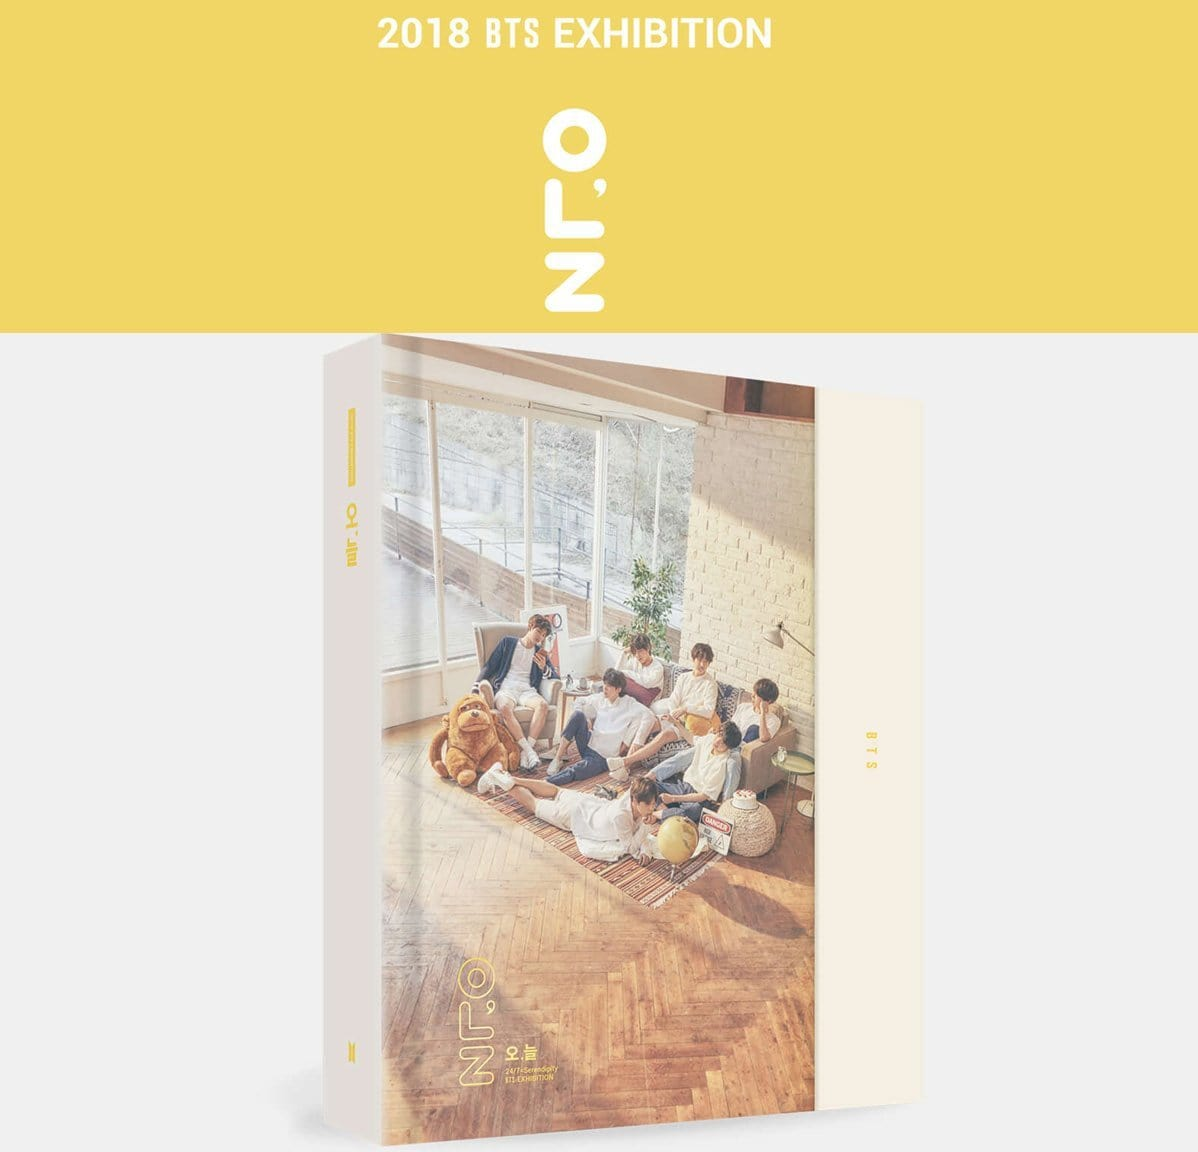 BTS EXHIBITION